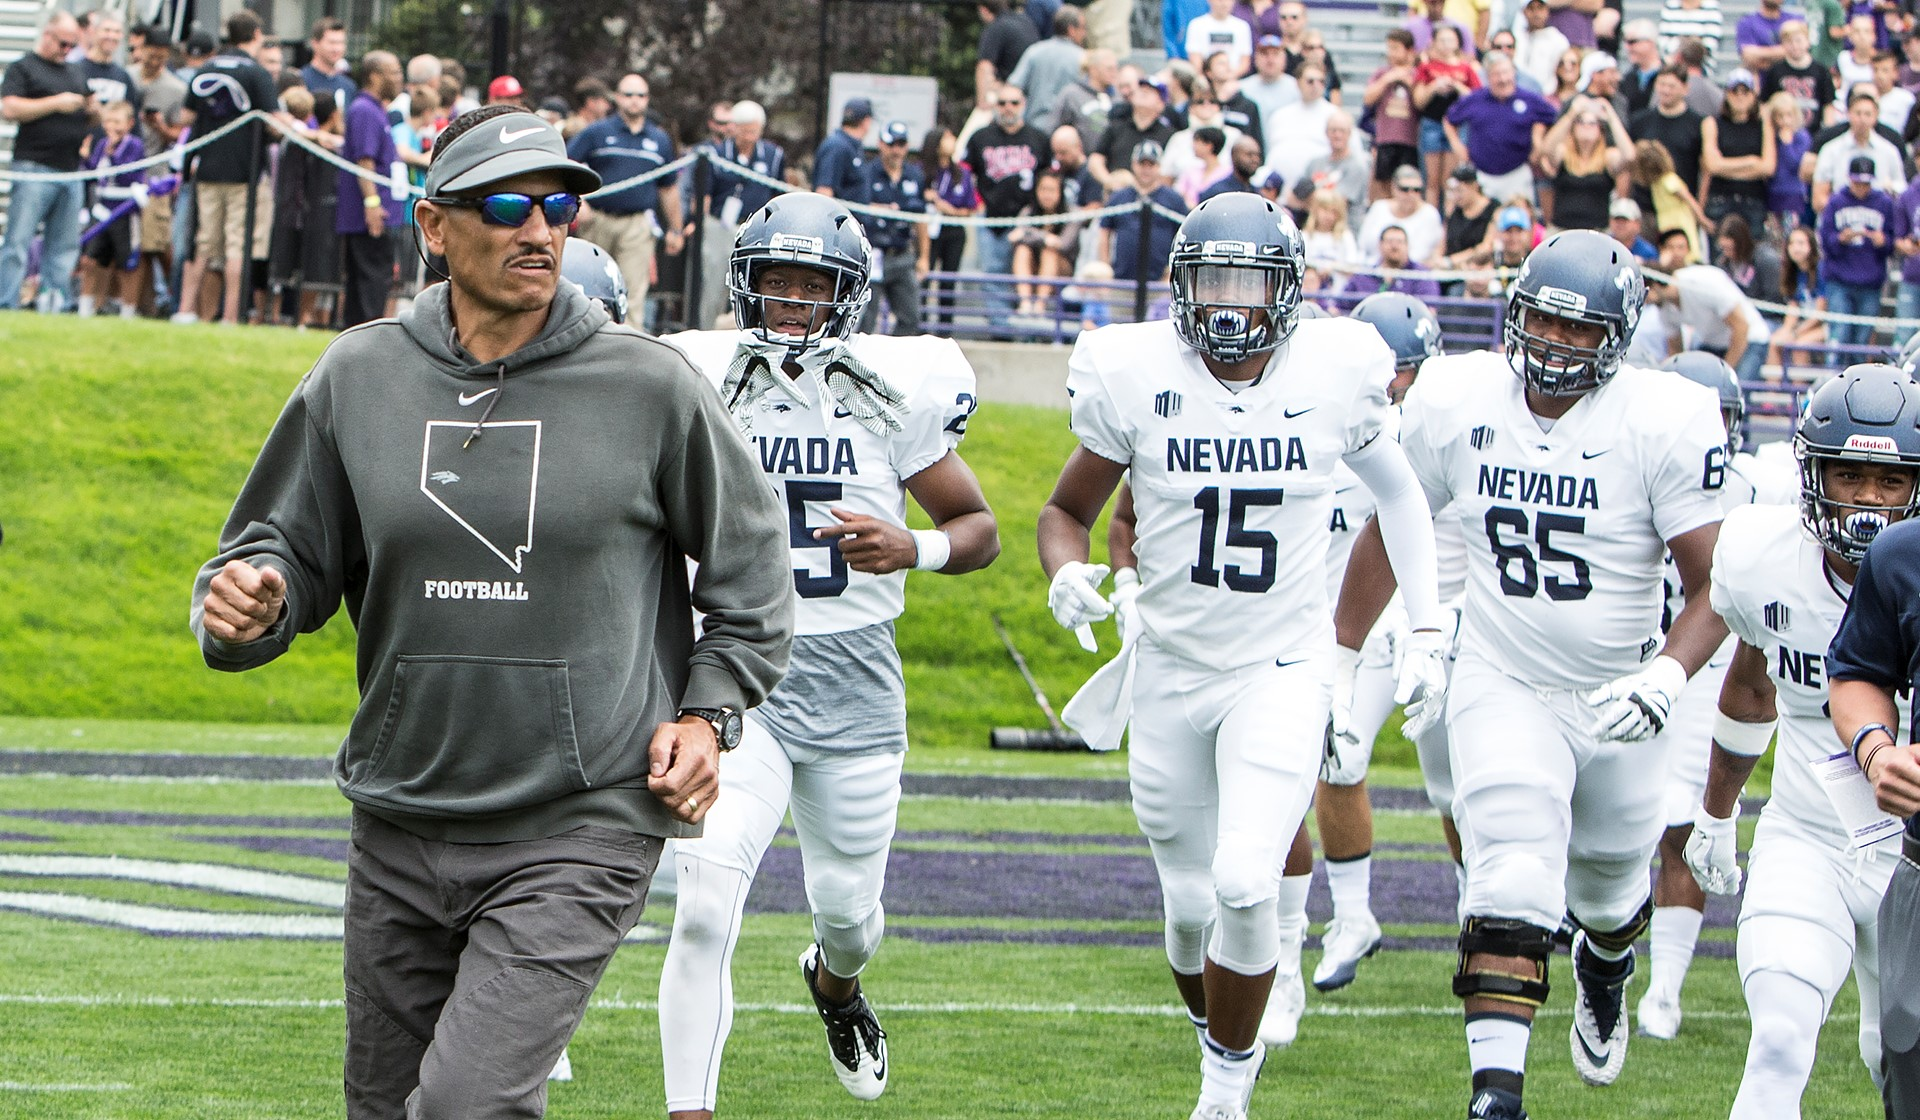 Parking, game and ticket information for Nevada football ...